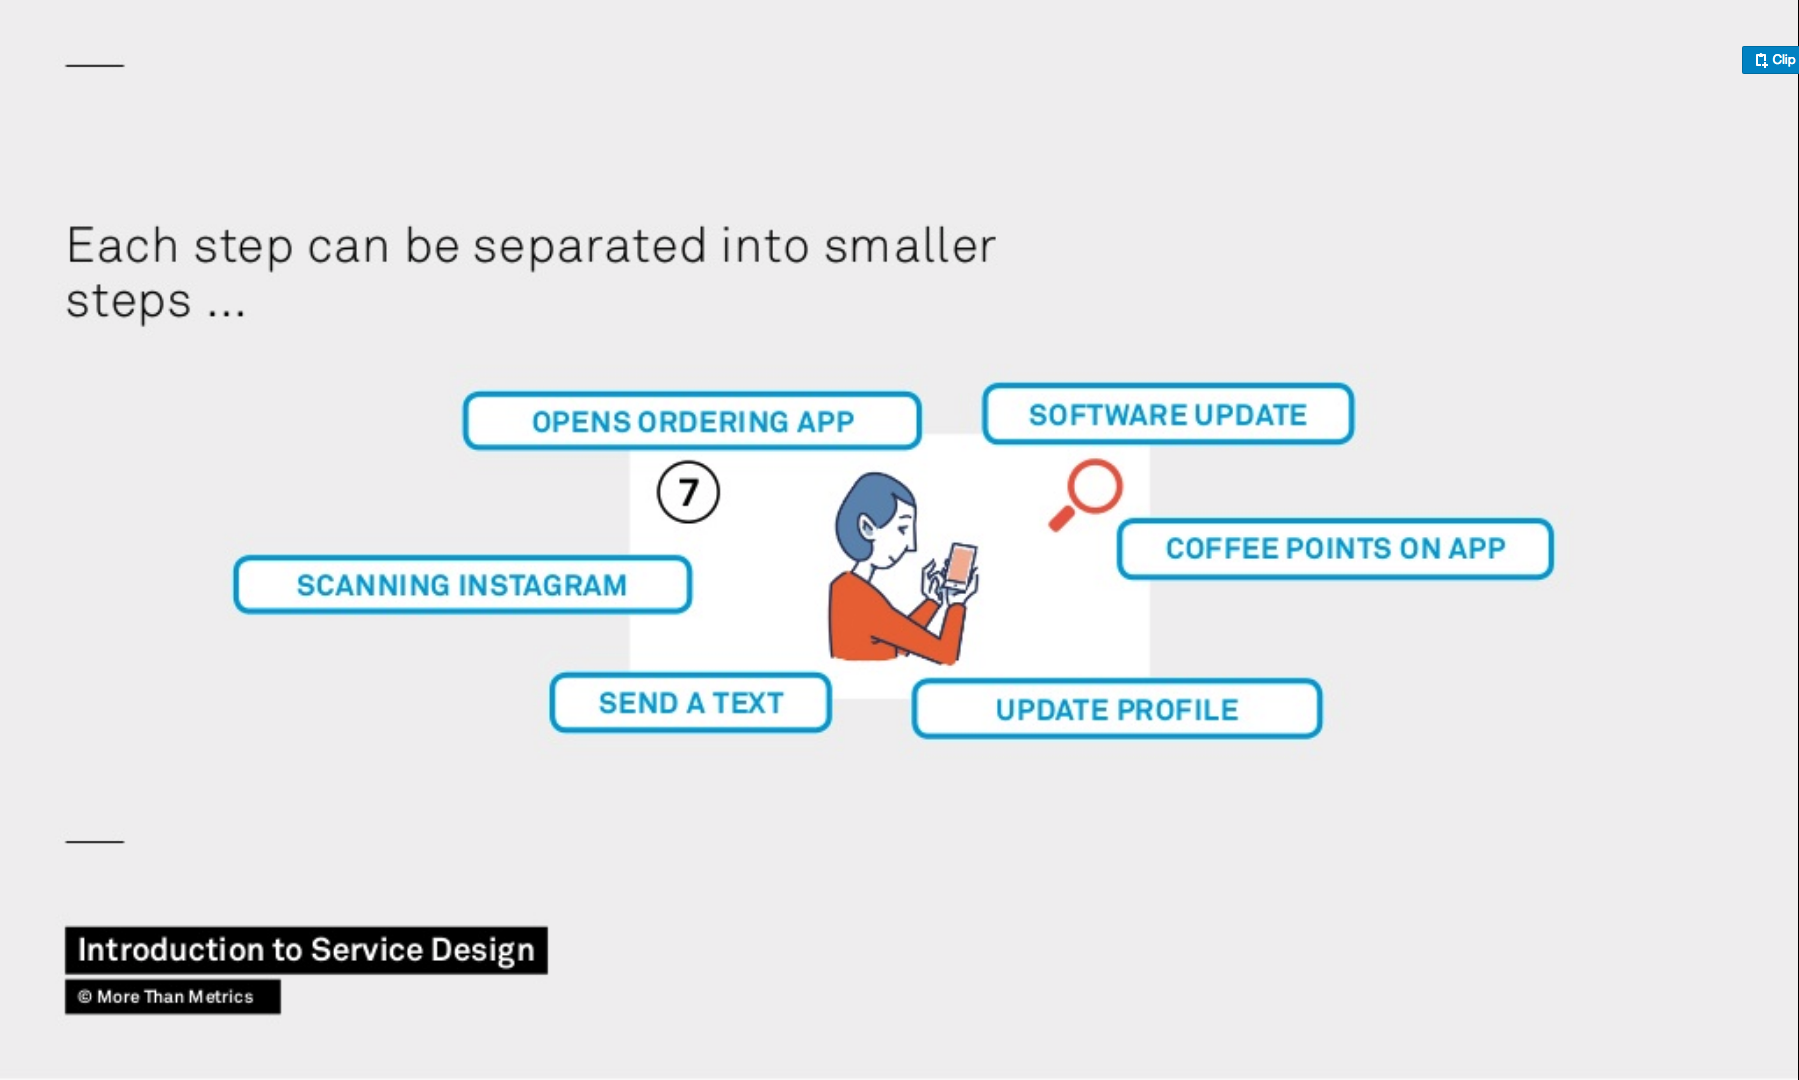 One step of the high level customer journey can also be split up into more smaller steps and interactions.